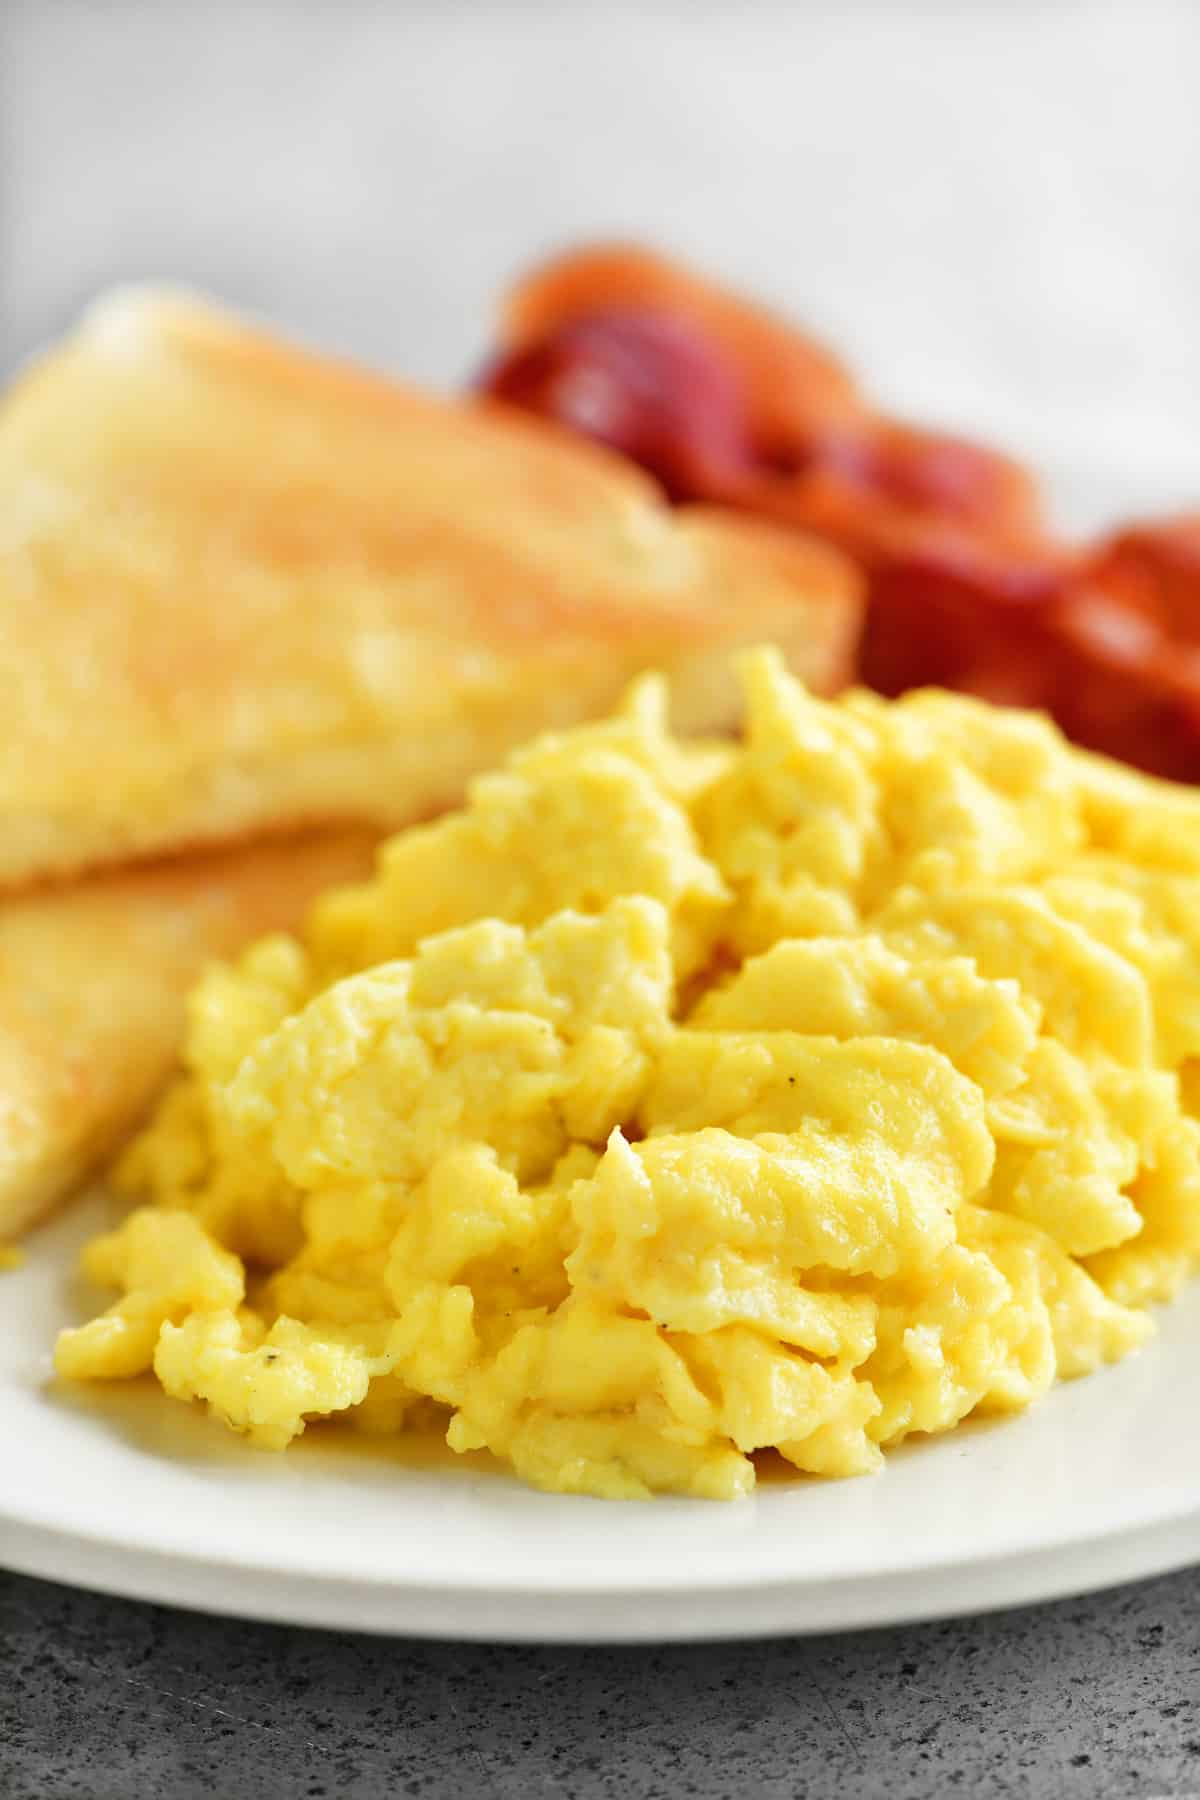 a delicious helping of scrambled eggs with bacon and toast